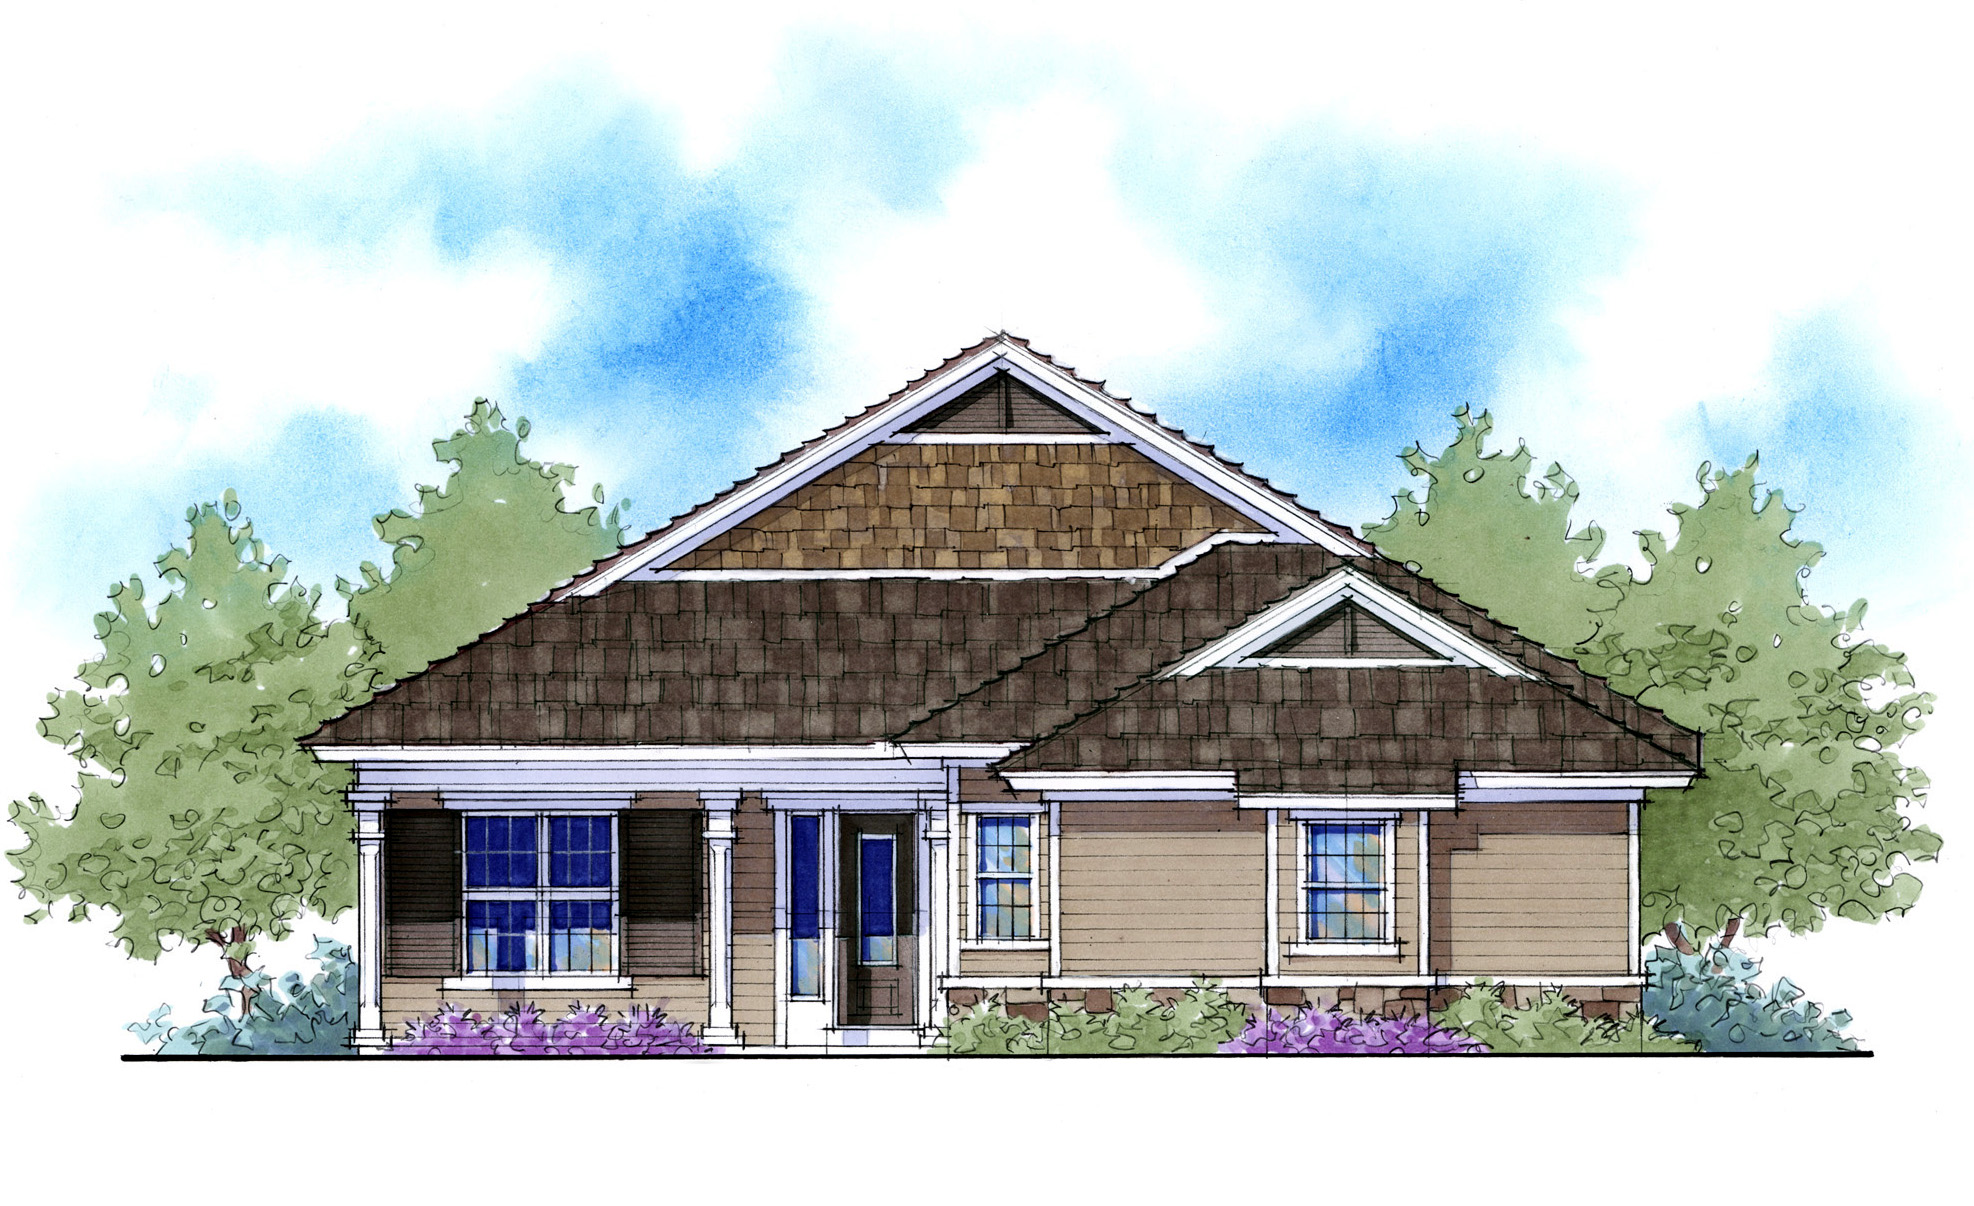 Net zero ready home plan with 3 elevations 33111zr for Net zero home designs